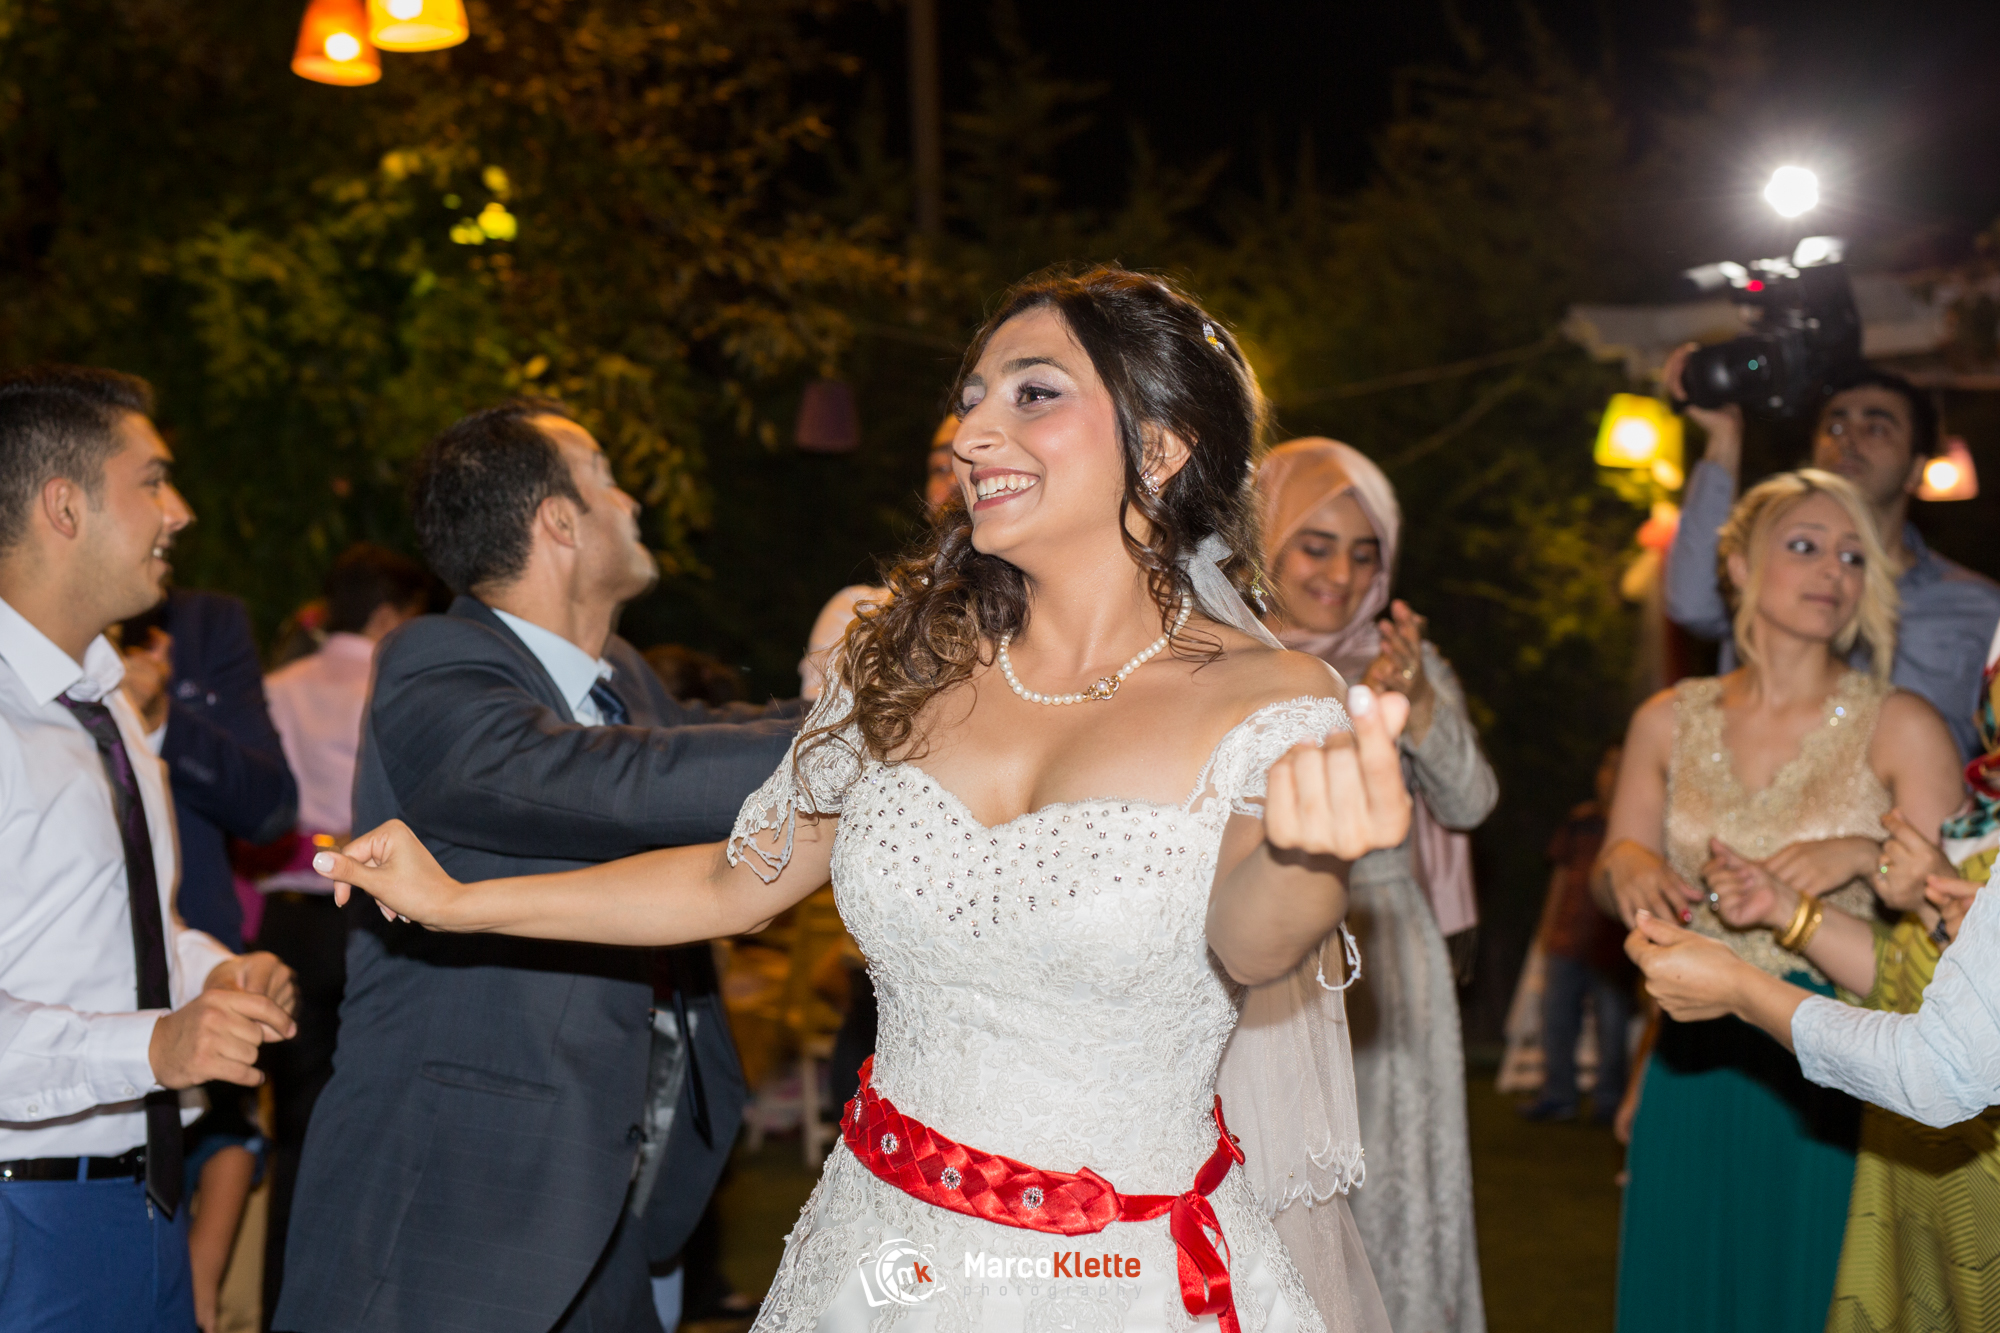 instanbul-wedding-web-34